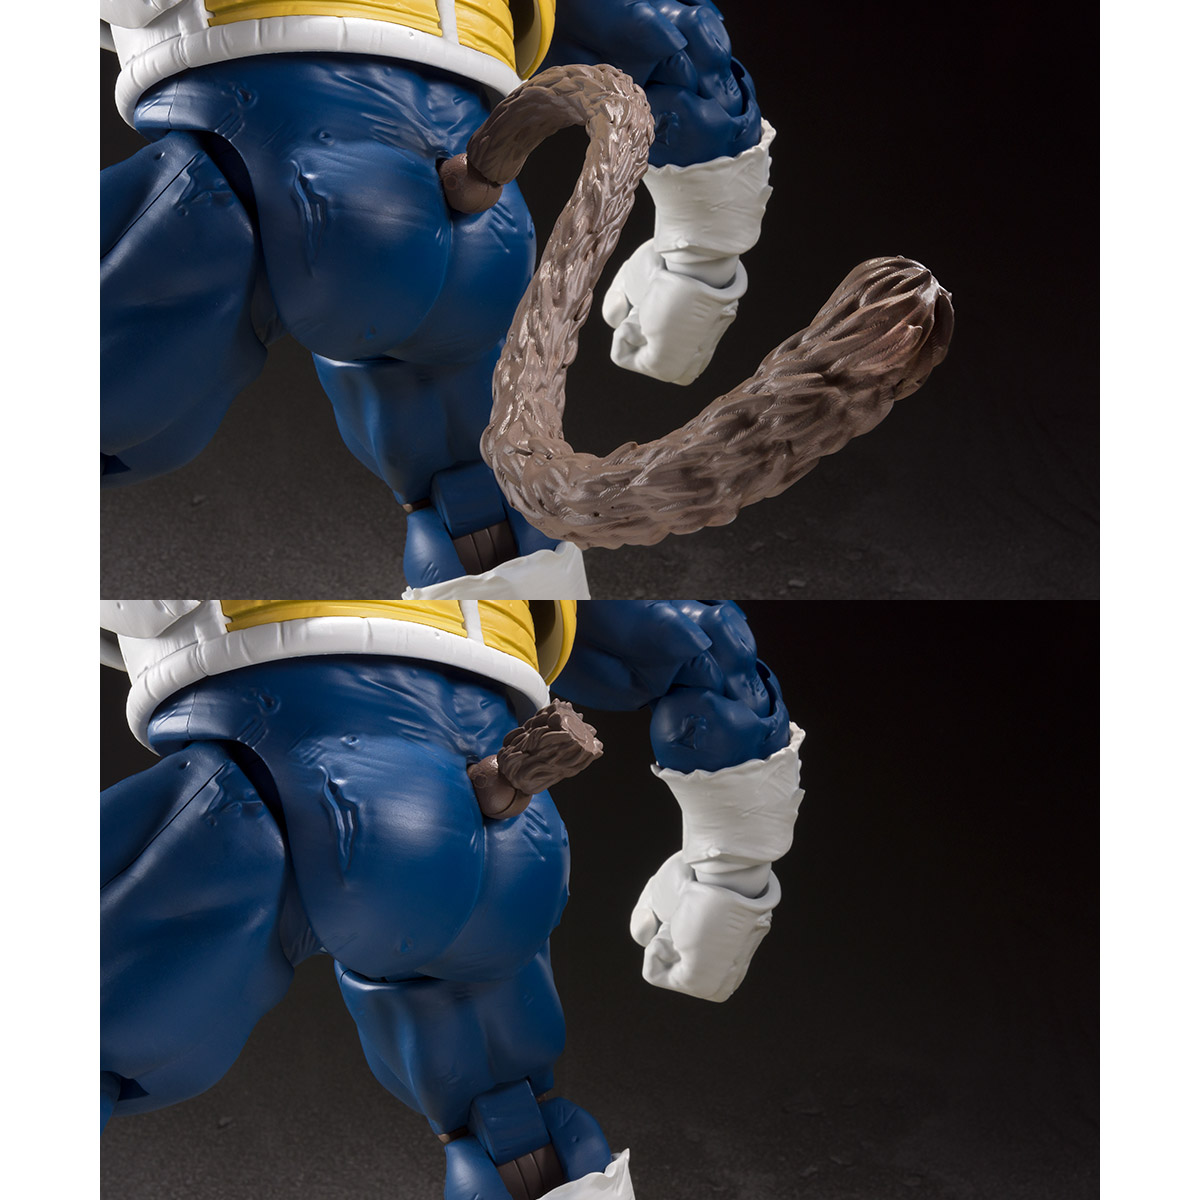 S.H.Figuarts GREAT APE VEGETA